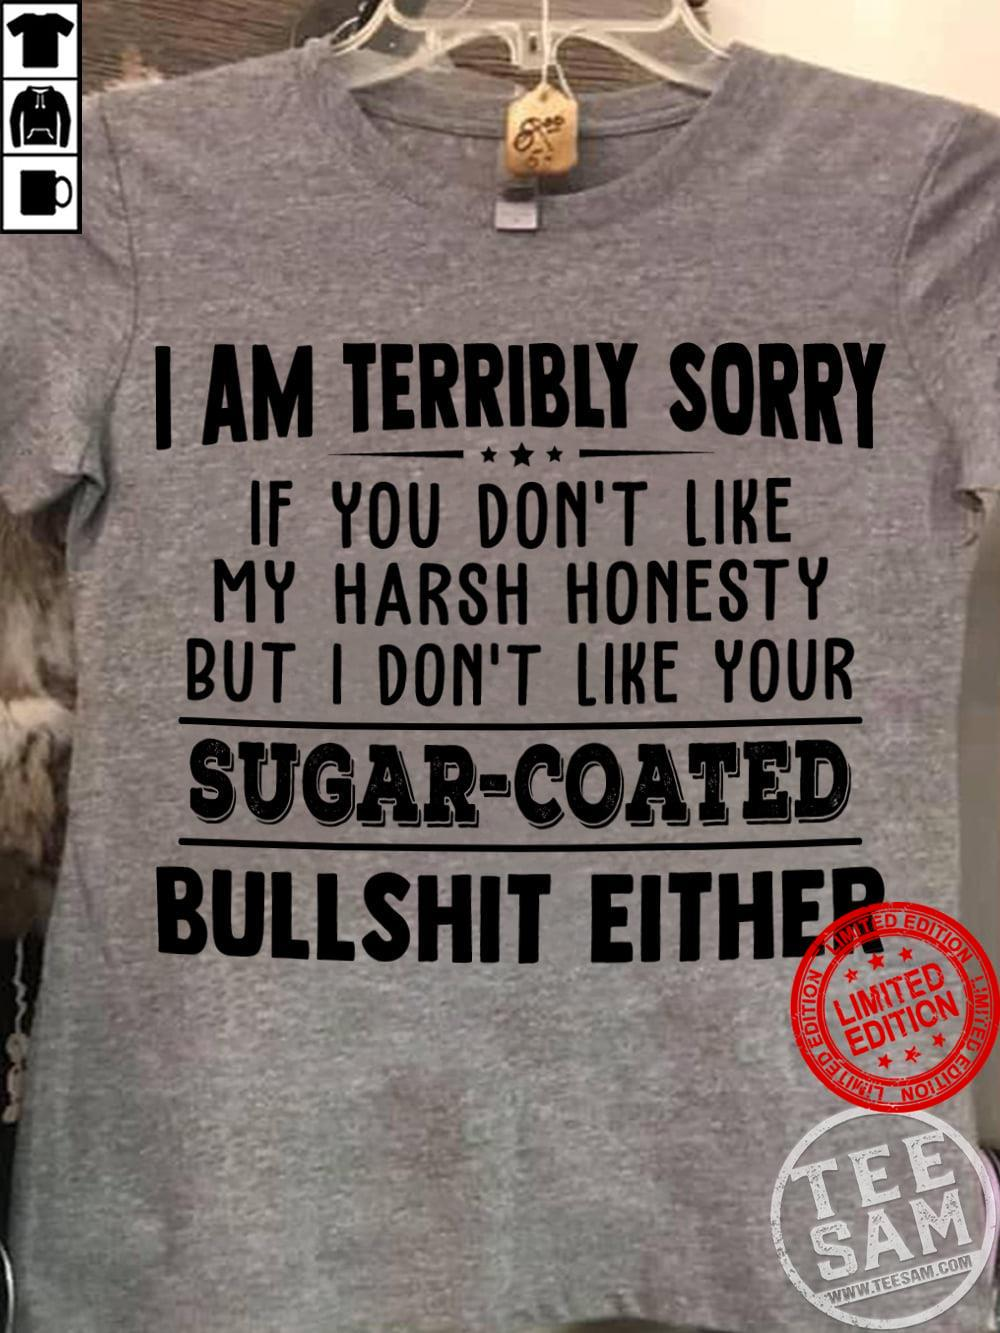 I Am Terribly Sorry If You Don't Like My Harsh Honesty But I Don't Like Your Sugar Coated Bullshit Either Shirt